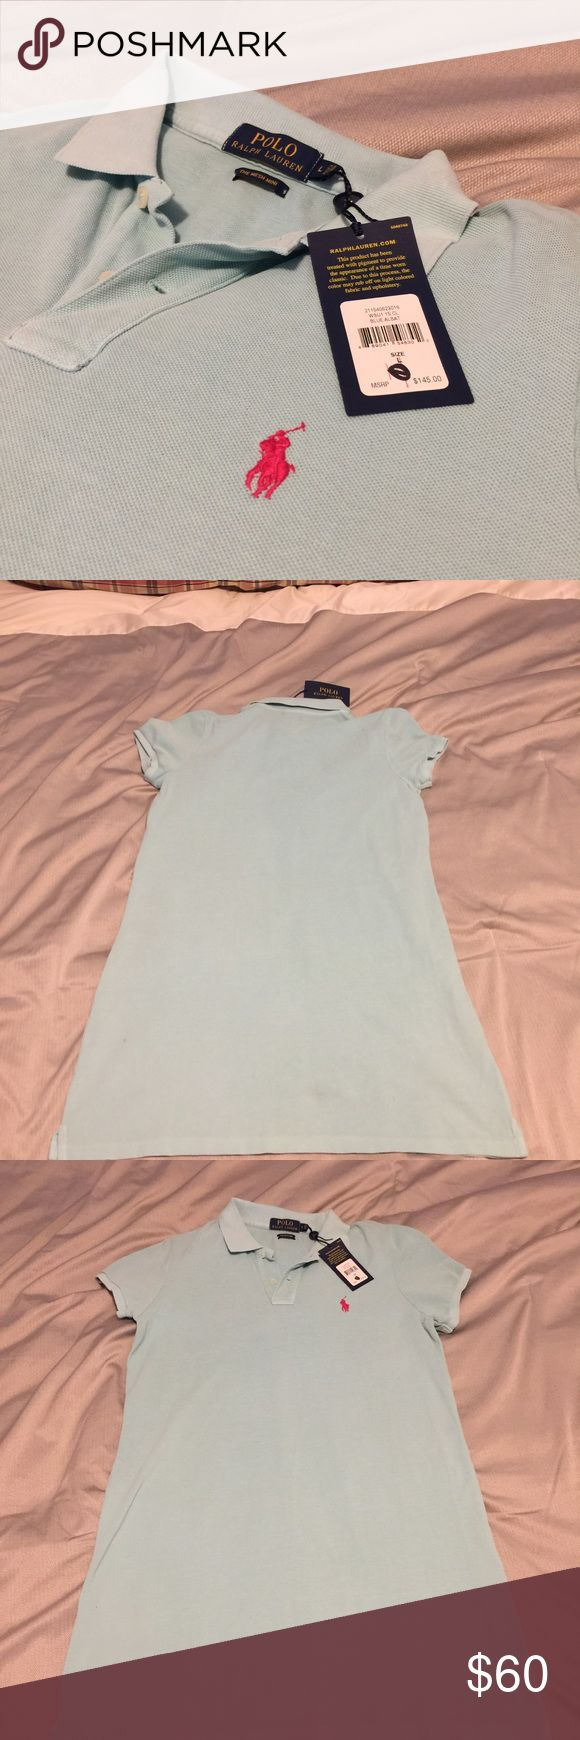 Polo Ralph Lauren Mesh Mini Dress A brand new with tags Ralph Lauren Polo Mesh Mini Dress. Will be a great addition to your closet at a better price. Polo by Ralph Lauren Dresses Mini